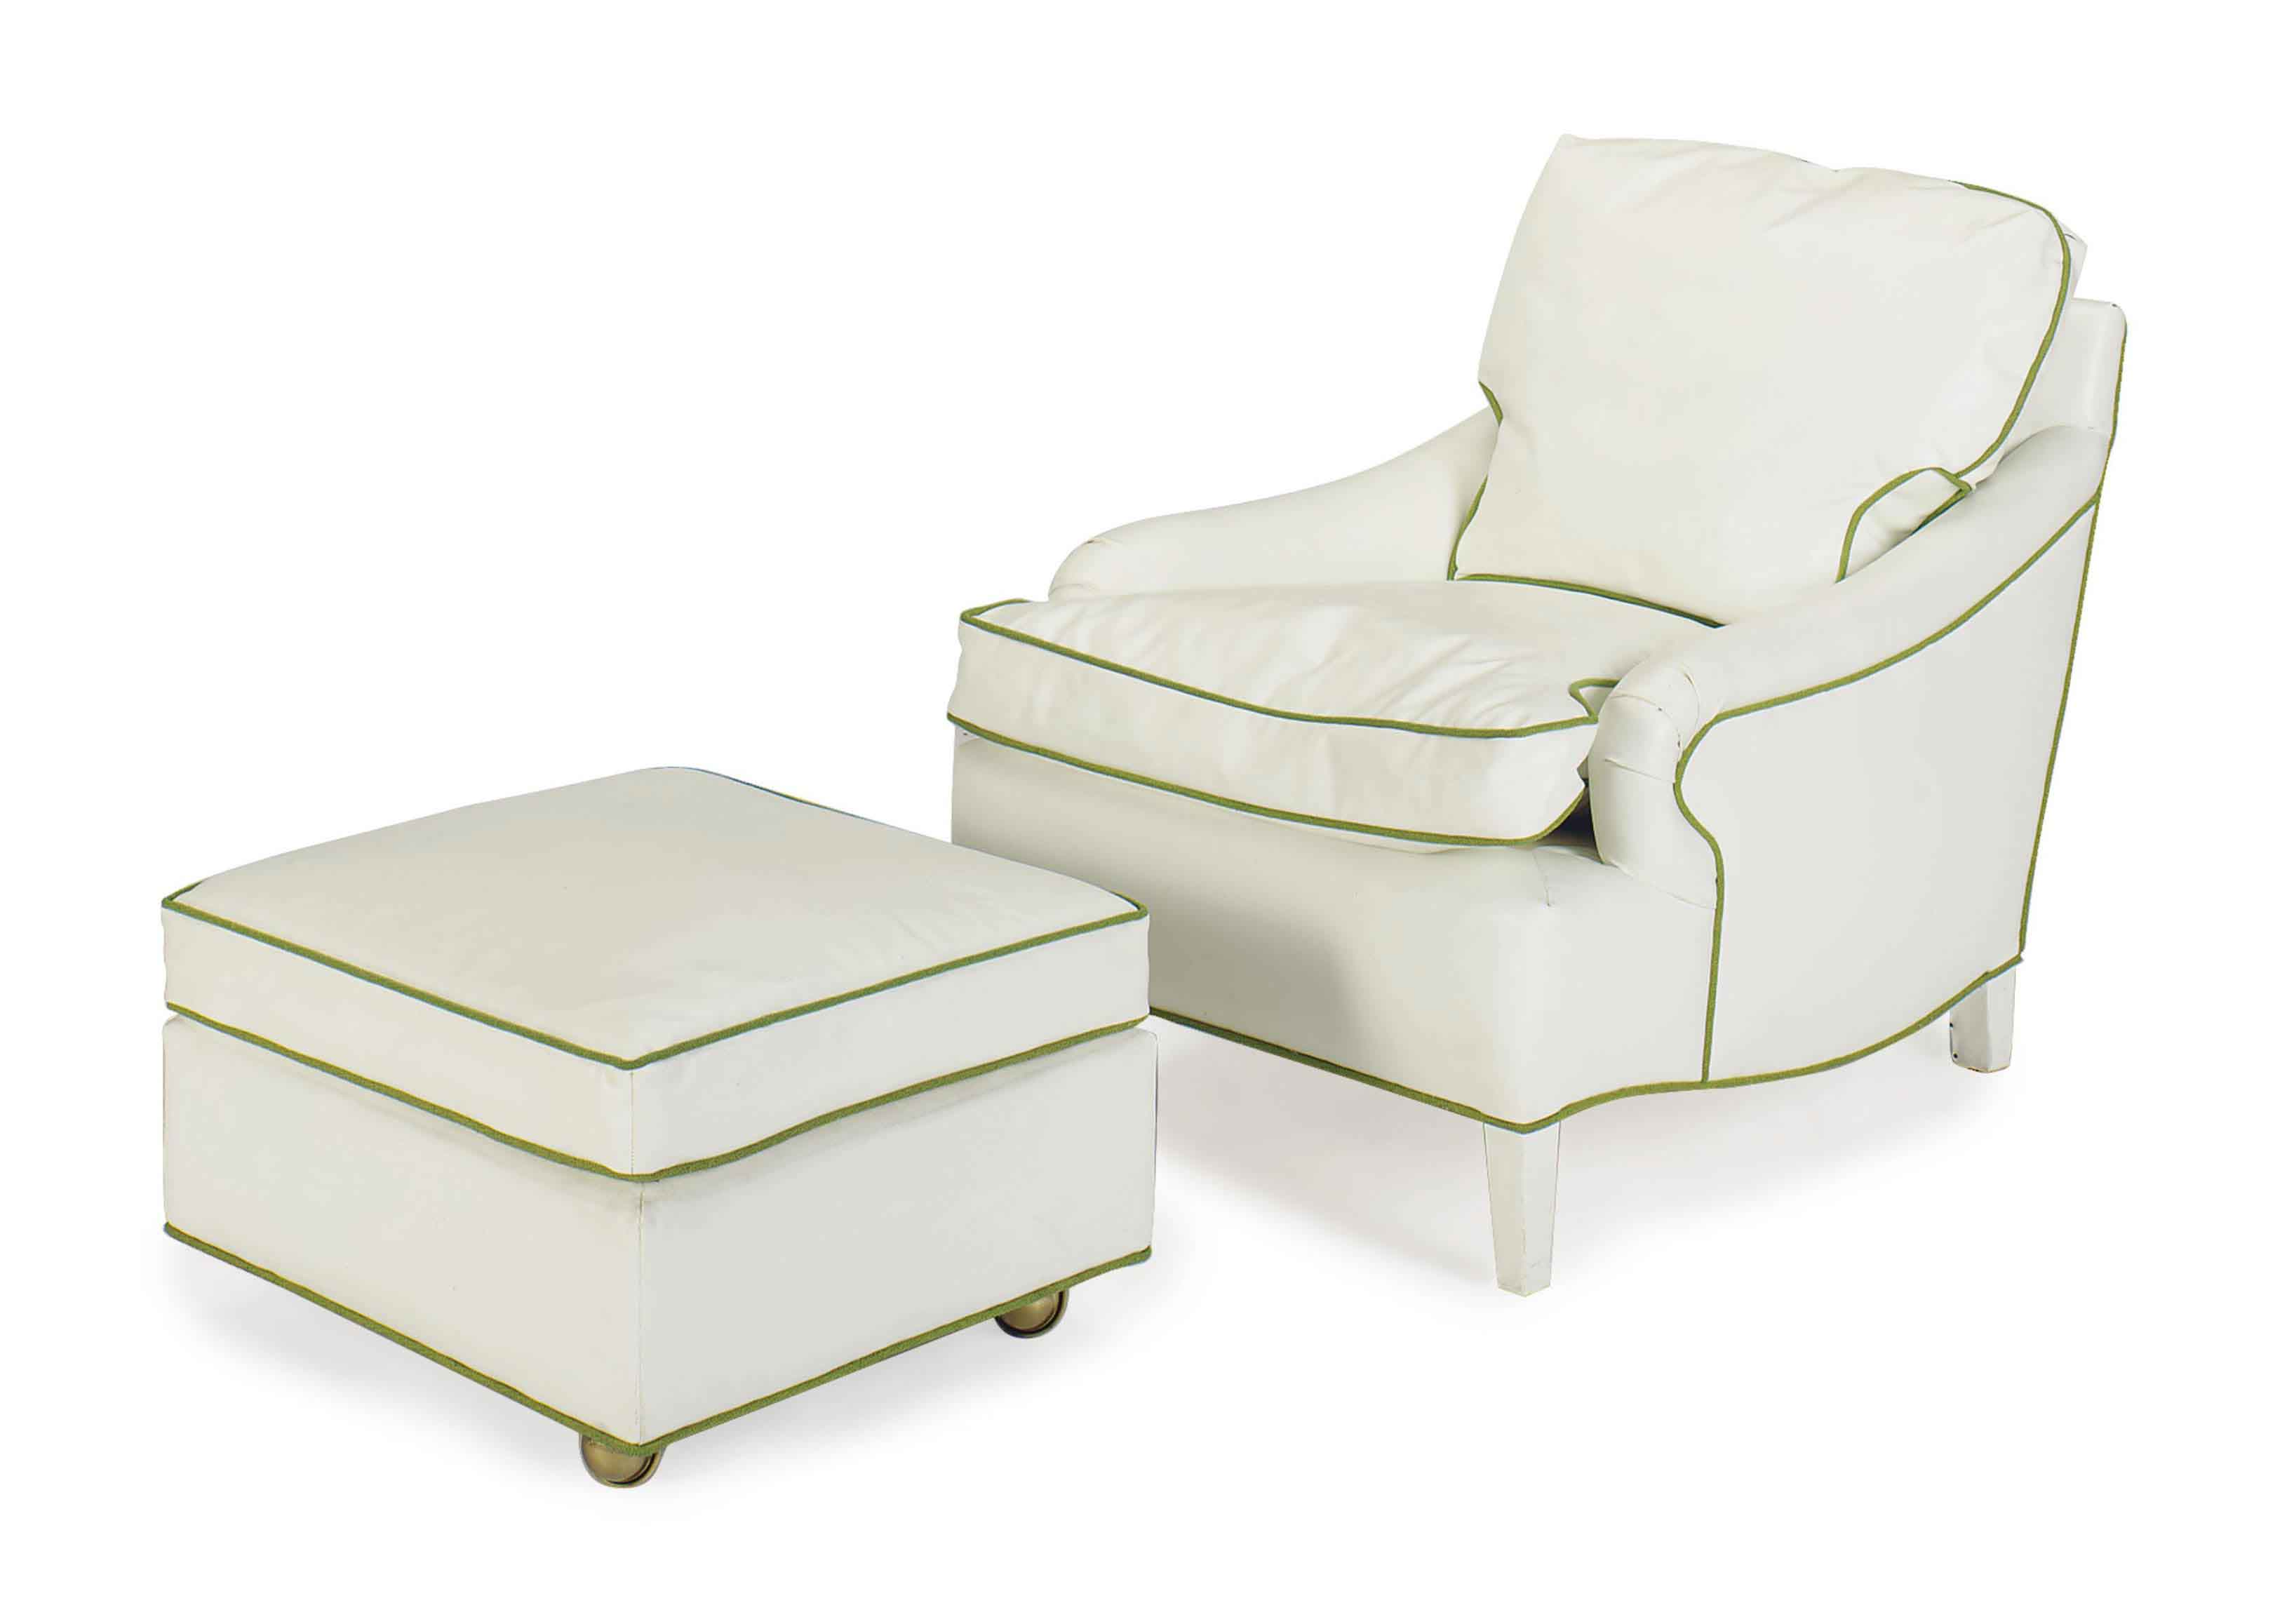 A WHITE VINYL-UPHOLSTERED CLUB CHAIR AND OTTOMAN,